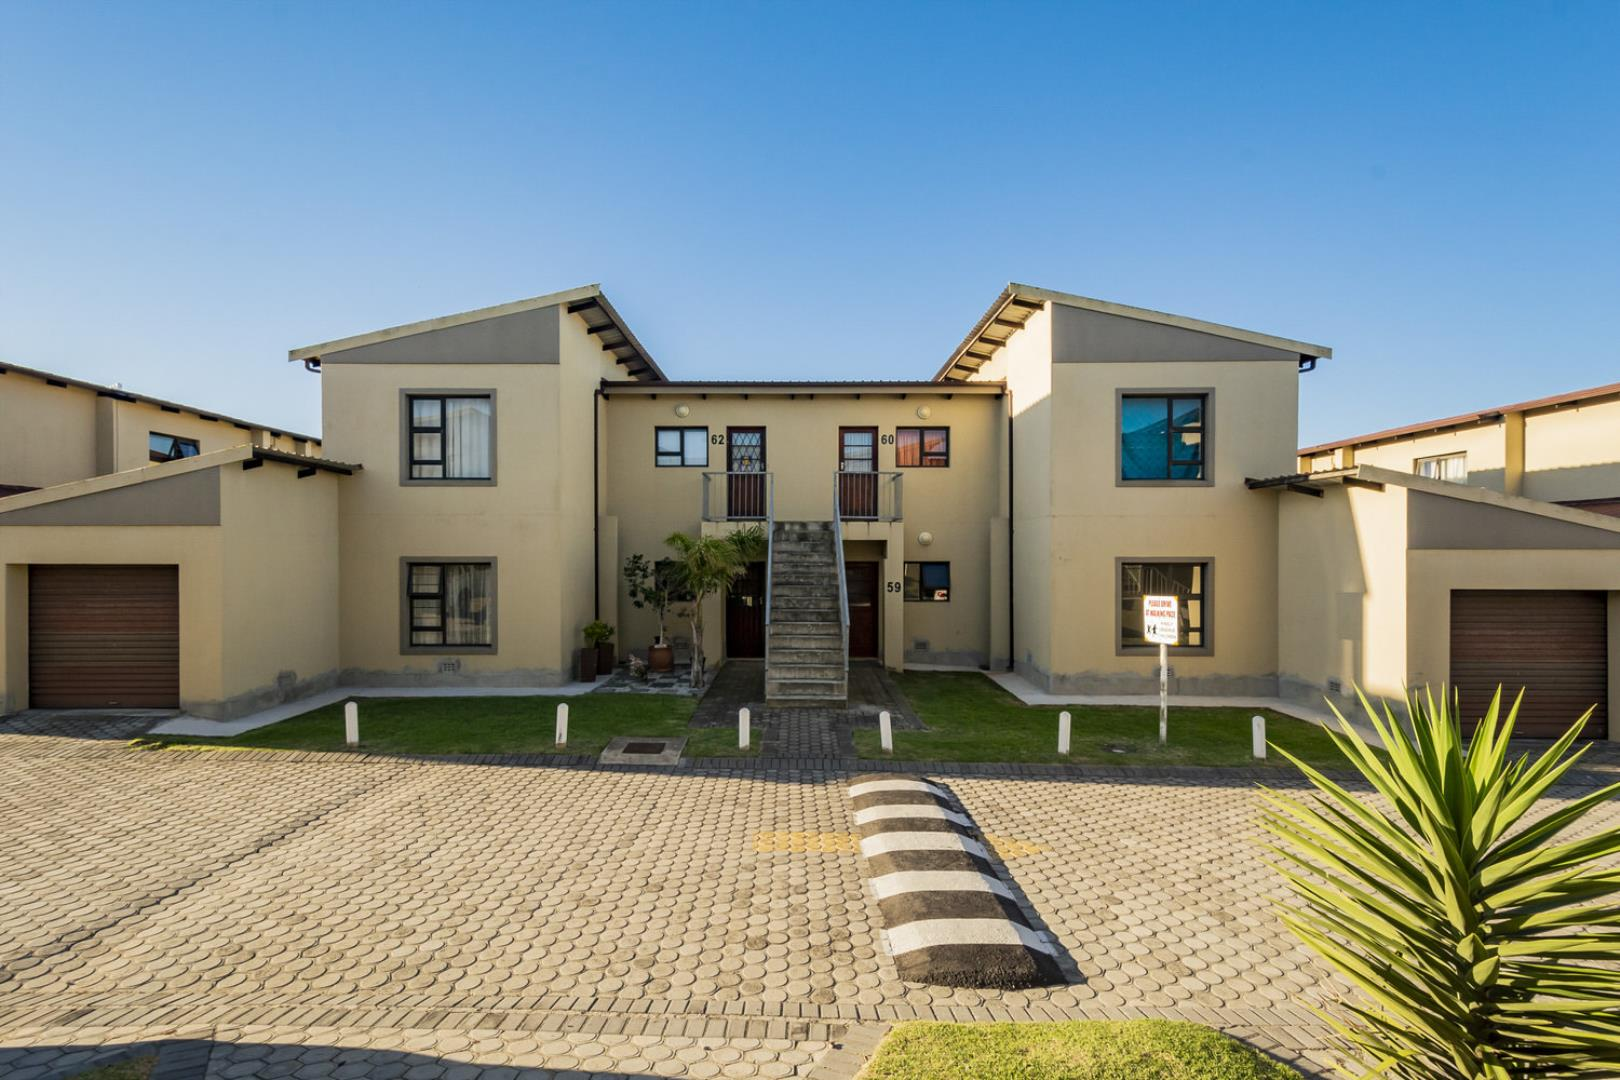 3 Bedroom  Apartment for Sale in Port Elizabeth - Eastern Cape